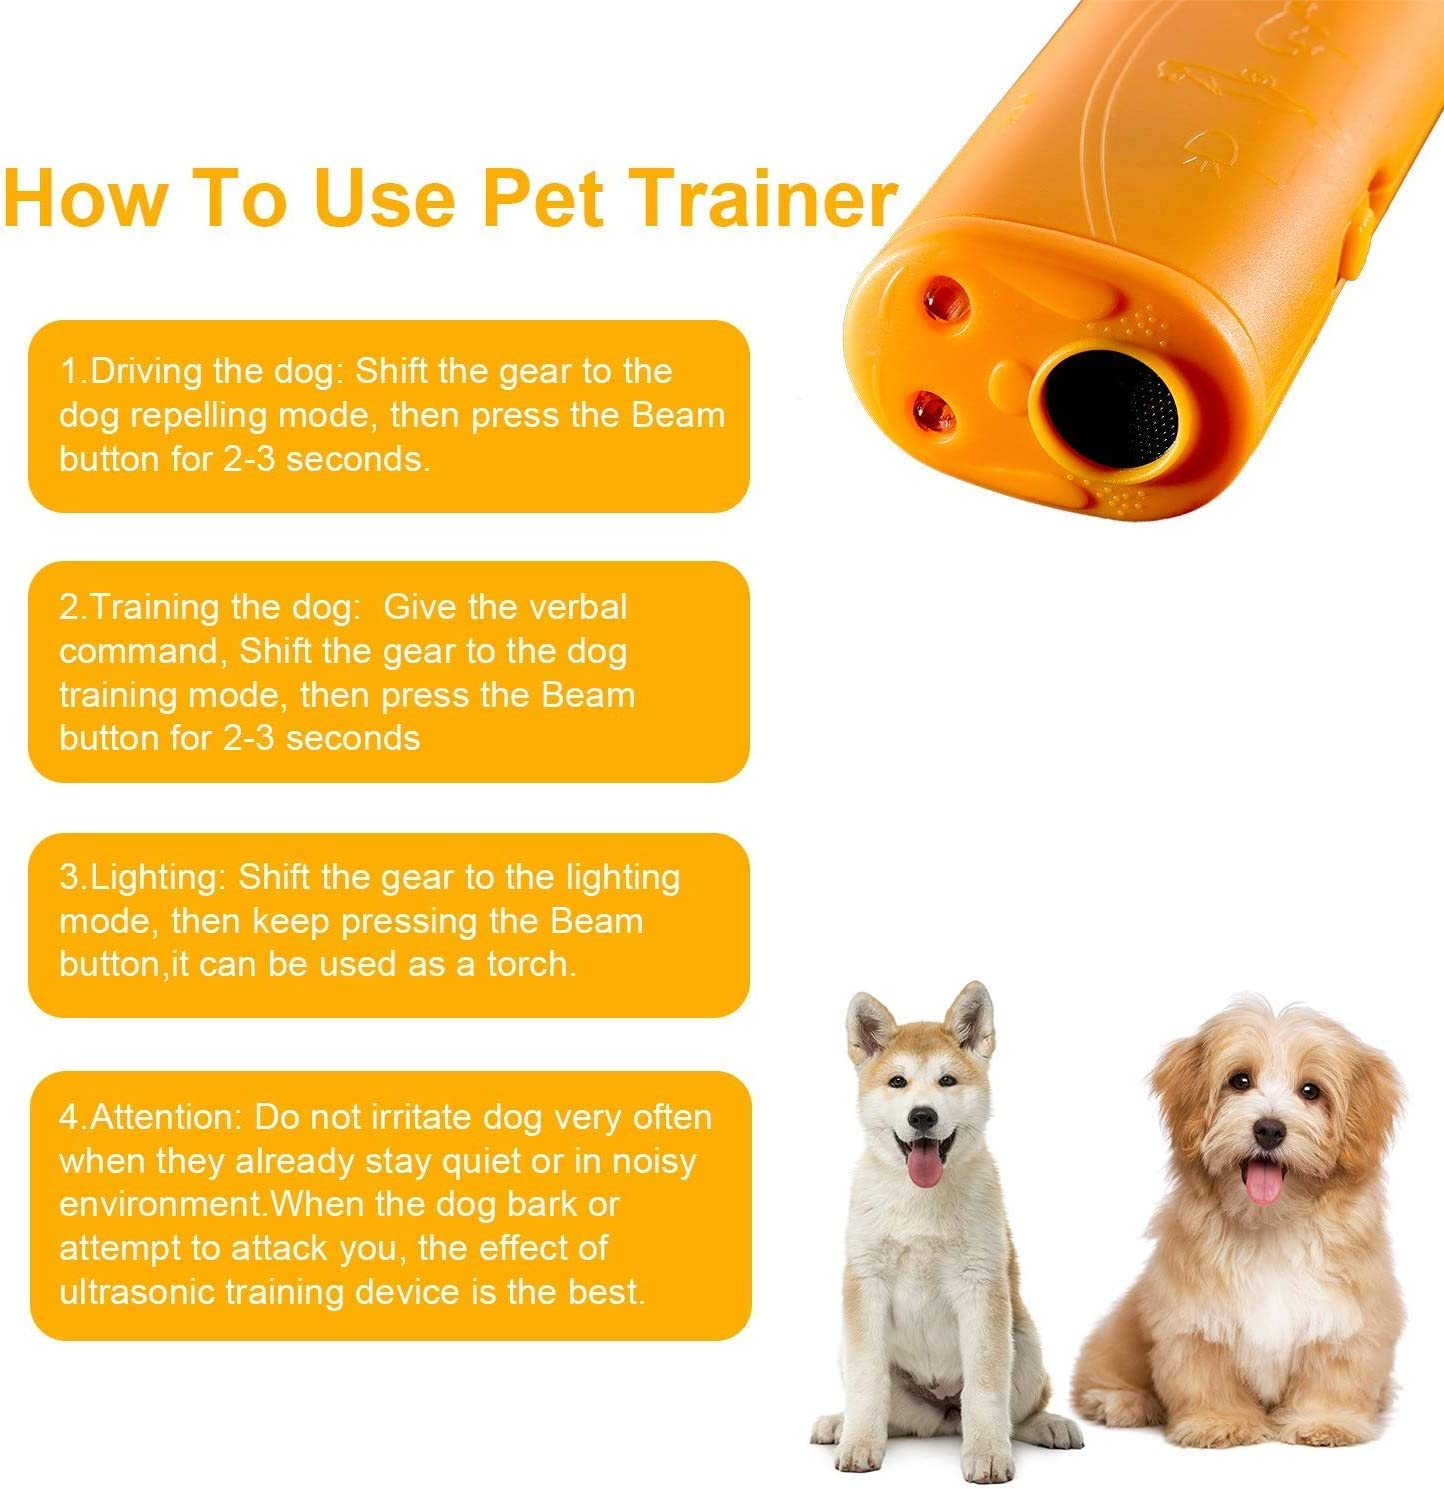 N-A Ultimate Canine Repeller Yellow Ultrasonic Dog Pet Repeller Training Device 3 in 1Handheld Dog Barking Deterrent Devices with LED Light Anti-Bark Dog Collar Stop Barking Training Control